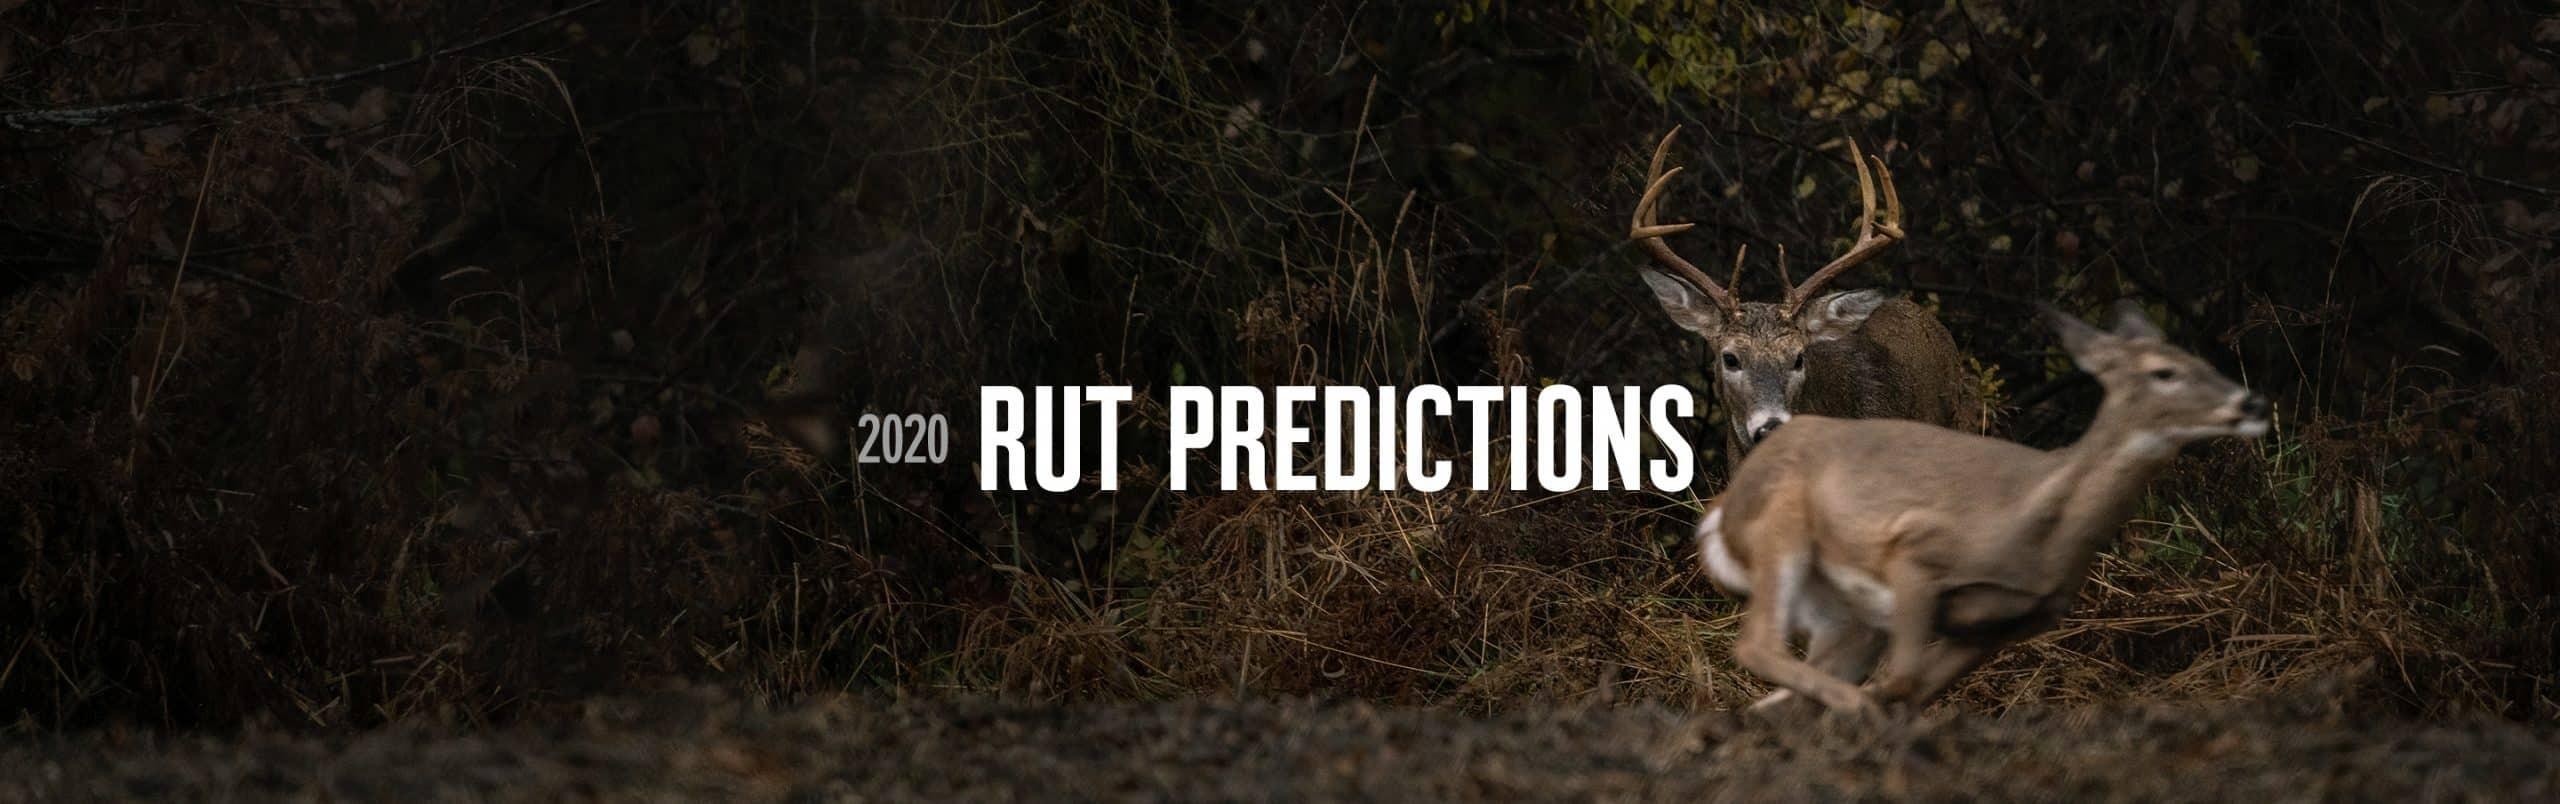 2020 Rut Predictions | Onx Maps  2021 Oklahoma Whitetail Rut Prediction